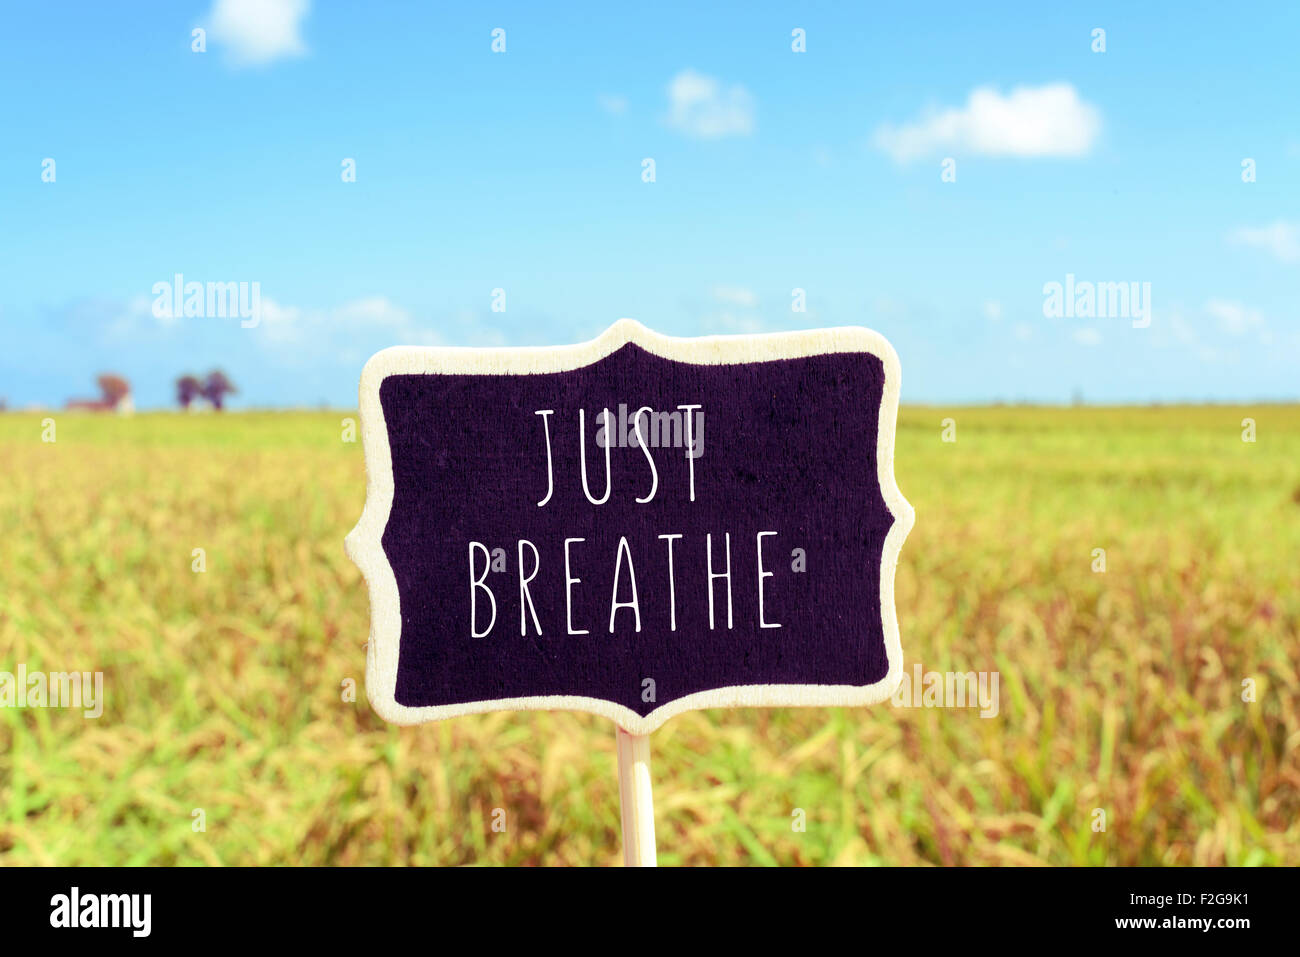 a black signboard with the text just breathe written in it in a peaceful landscape - Stock Image